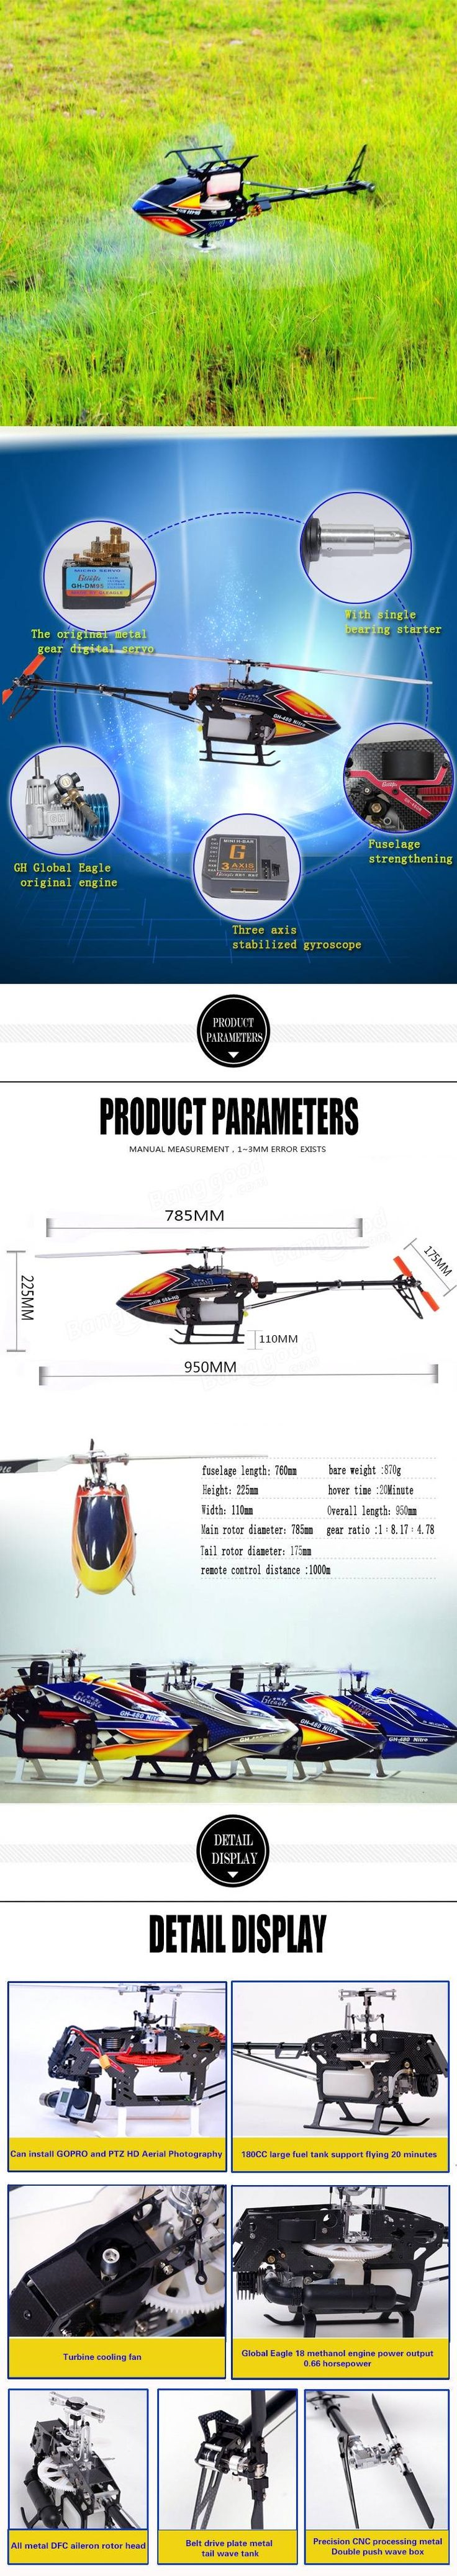 Only US$239.99, buy best Global Eagle 480N DFC Fuel Oil Nitro RC Helicopter Frame Kit sale online store at wholesale price.US/EU warehouse.